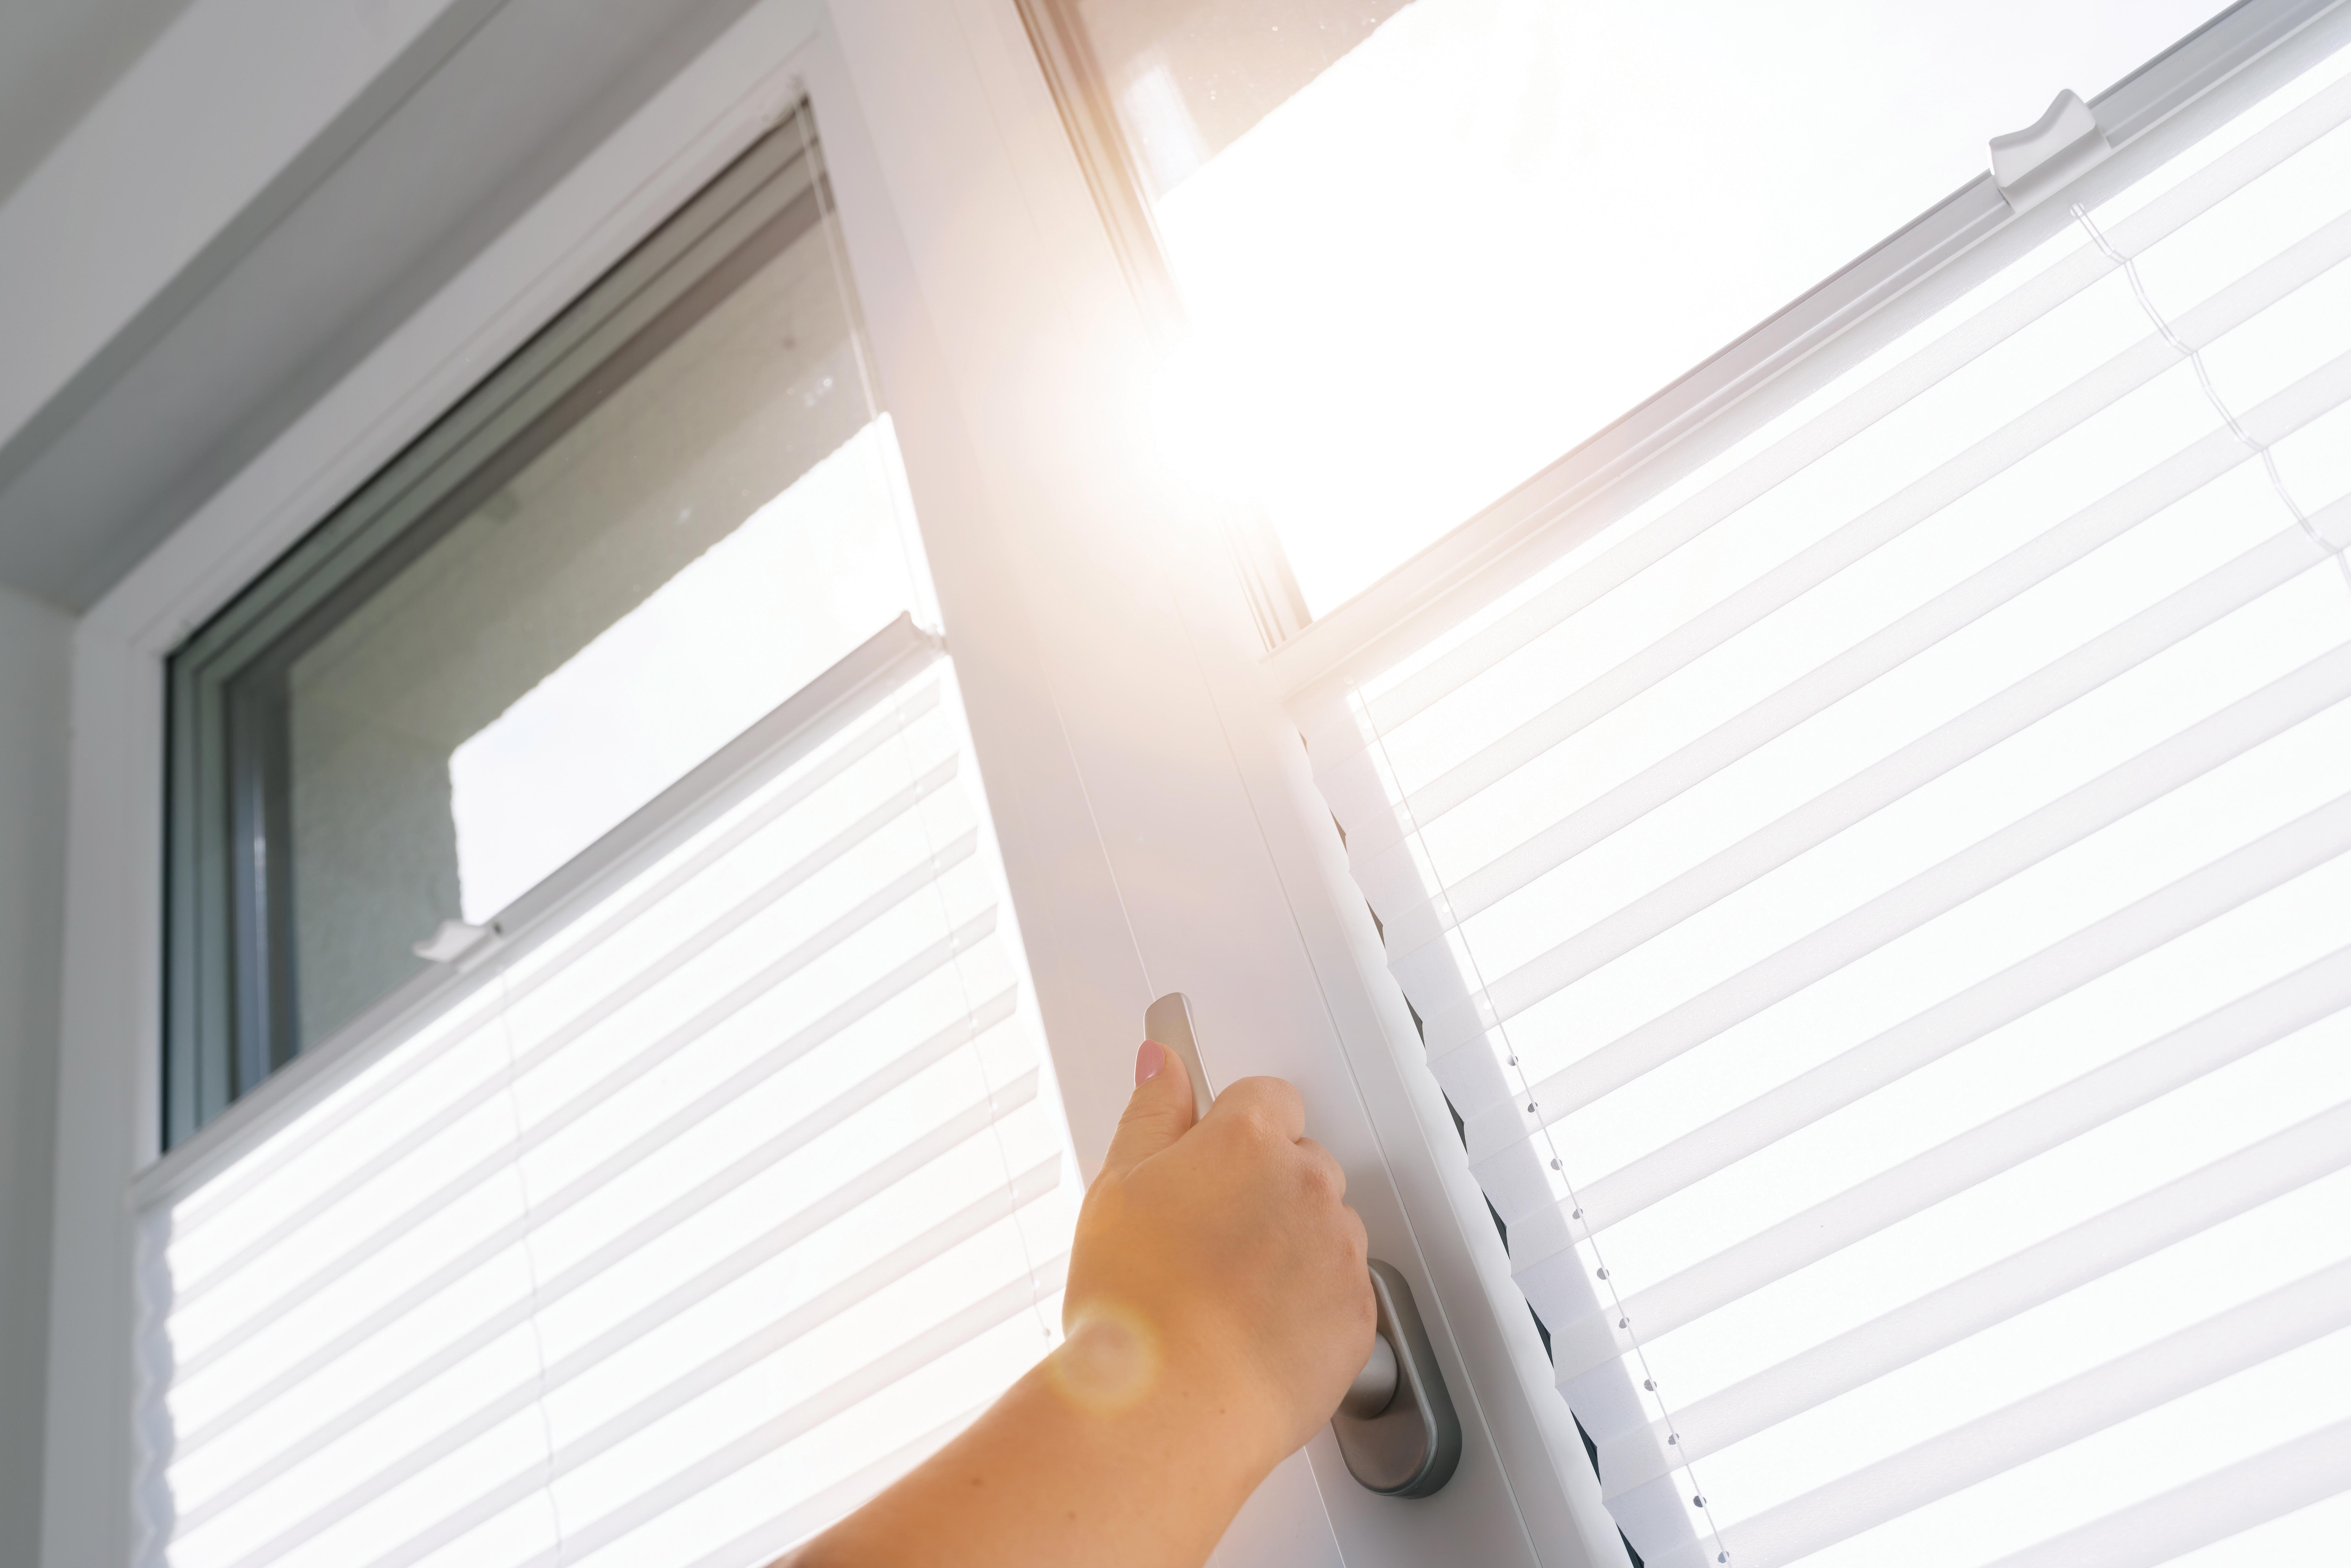 Photo of person opening windows